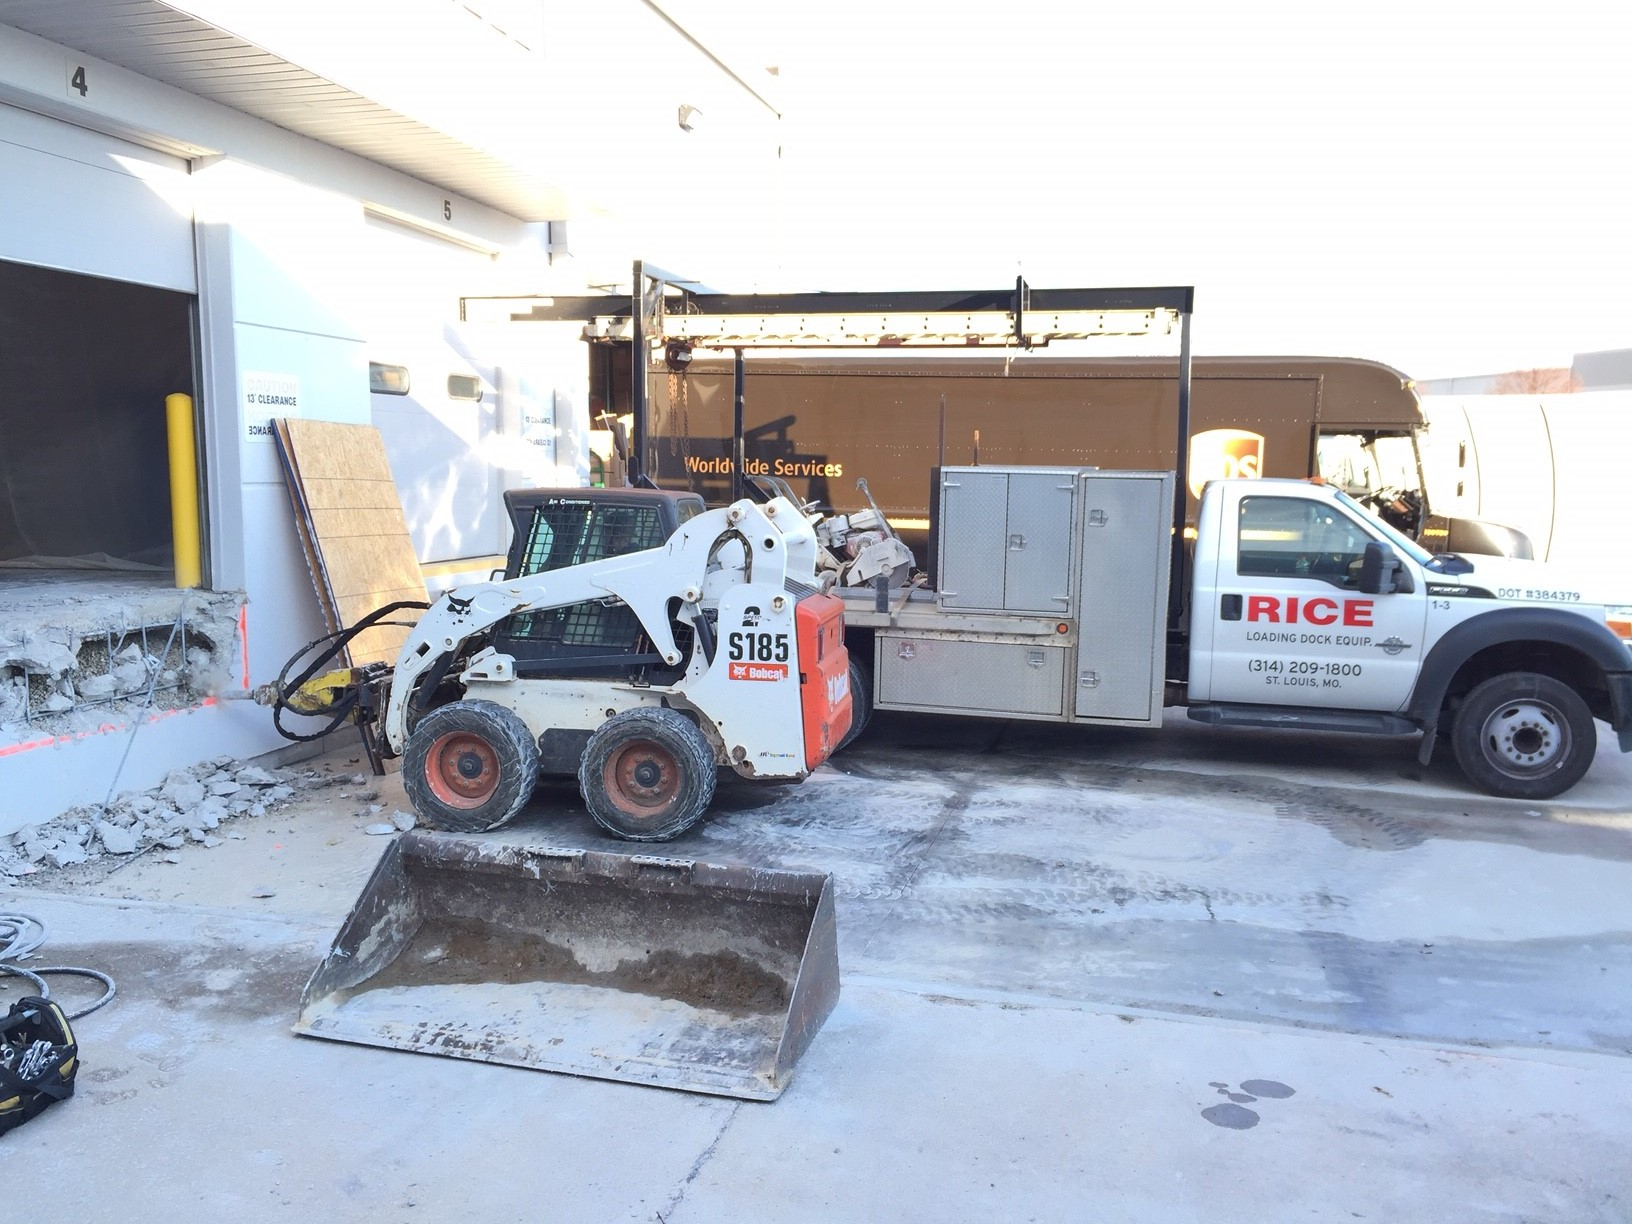 Loading Dock Concrete work new dock leveler pit rice equipment st louis mo.jpg